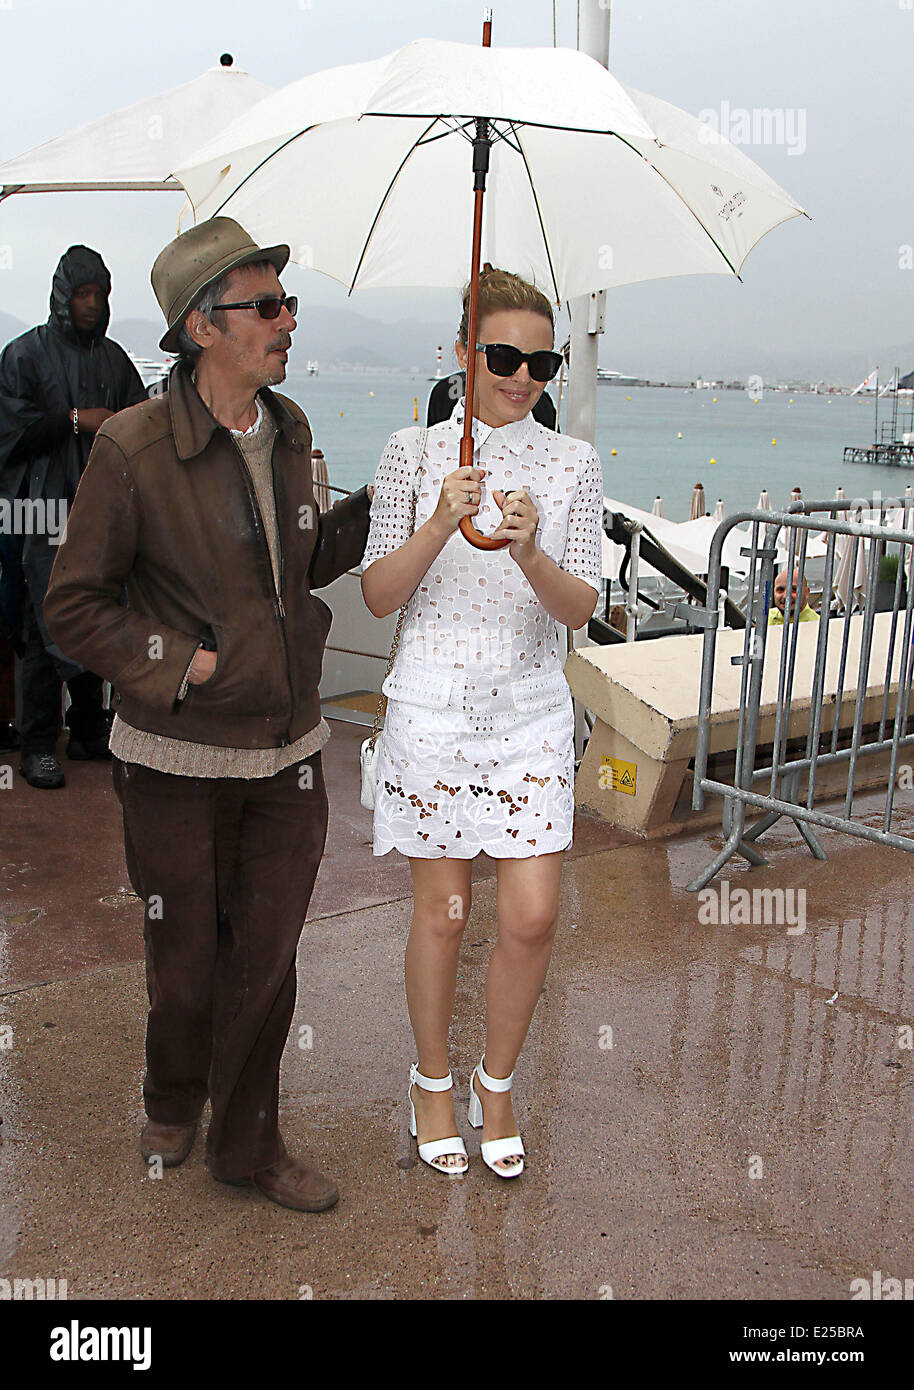 66th Cannes Film Festival - Celebrity Sighting - Day 8  Featuring: Kylie Minogue Where: Cannes, France When: 22 - Stock Image